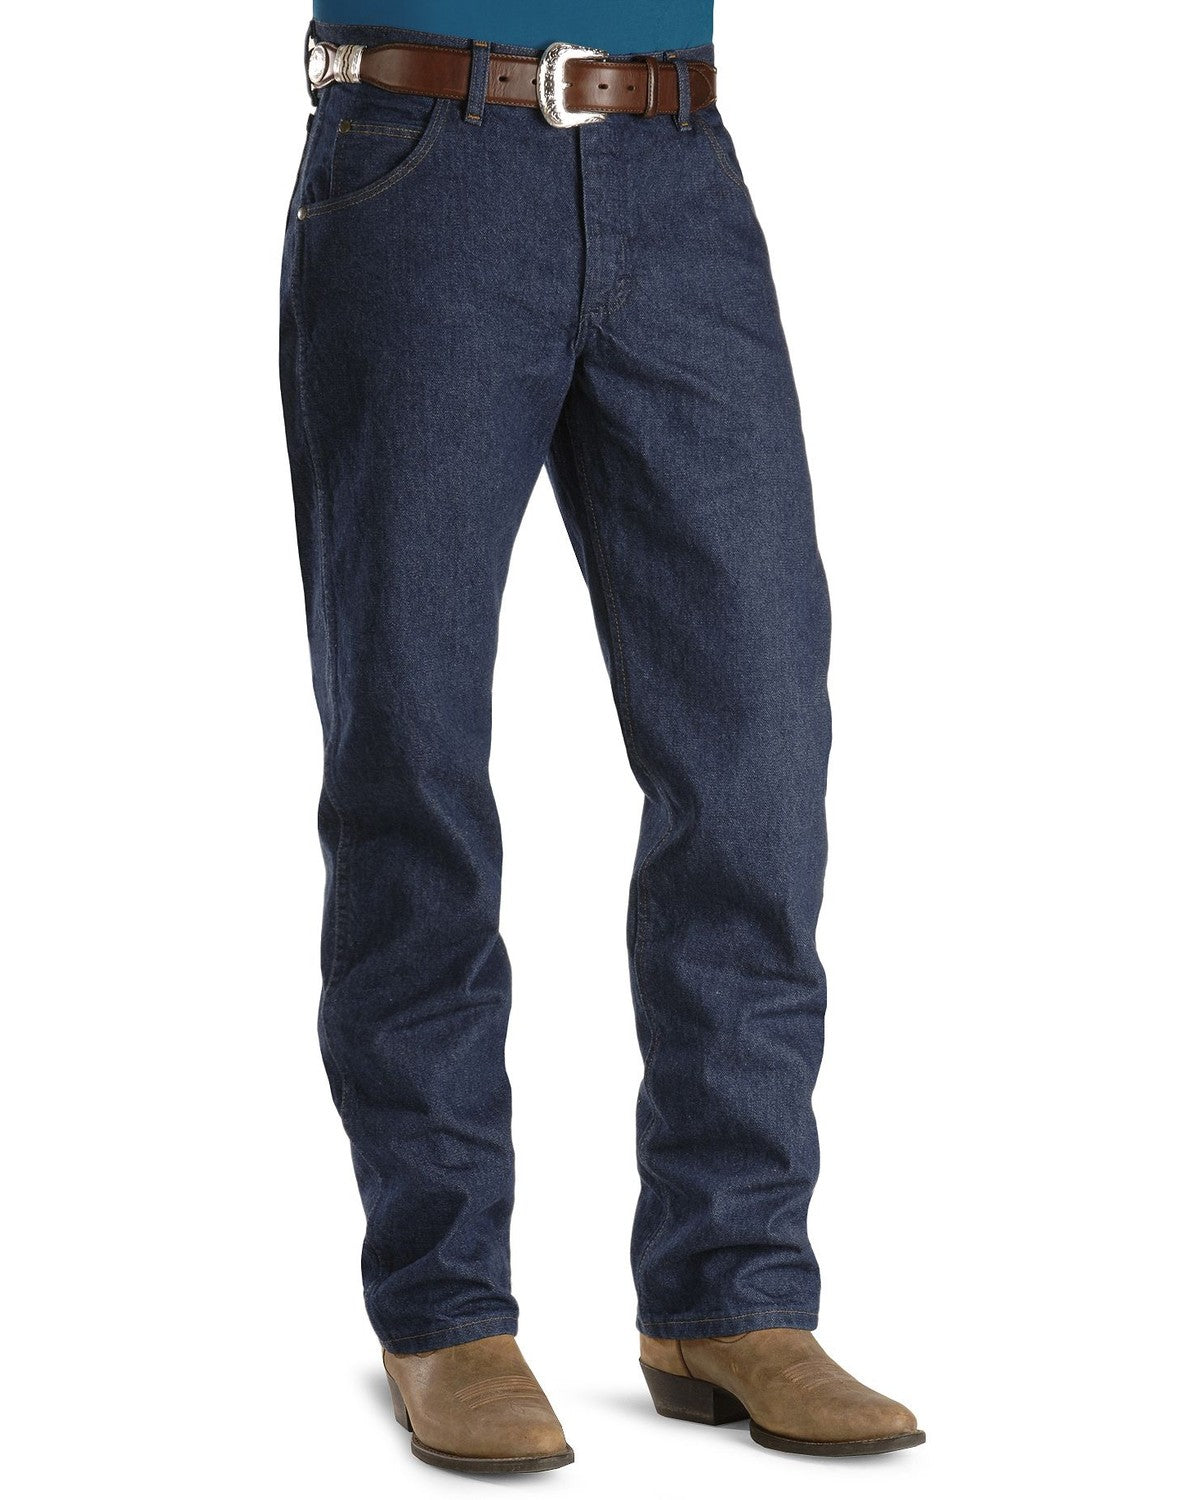 Premium Performance Cowboy Cut ® Regular Fit Jean